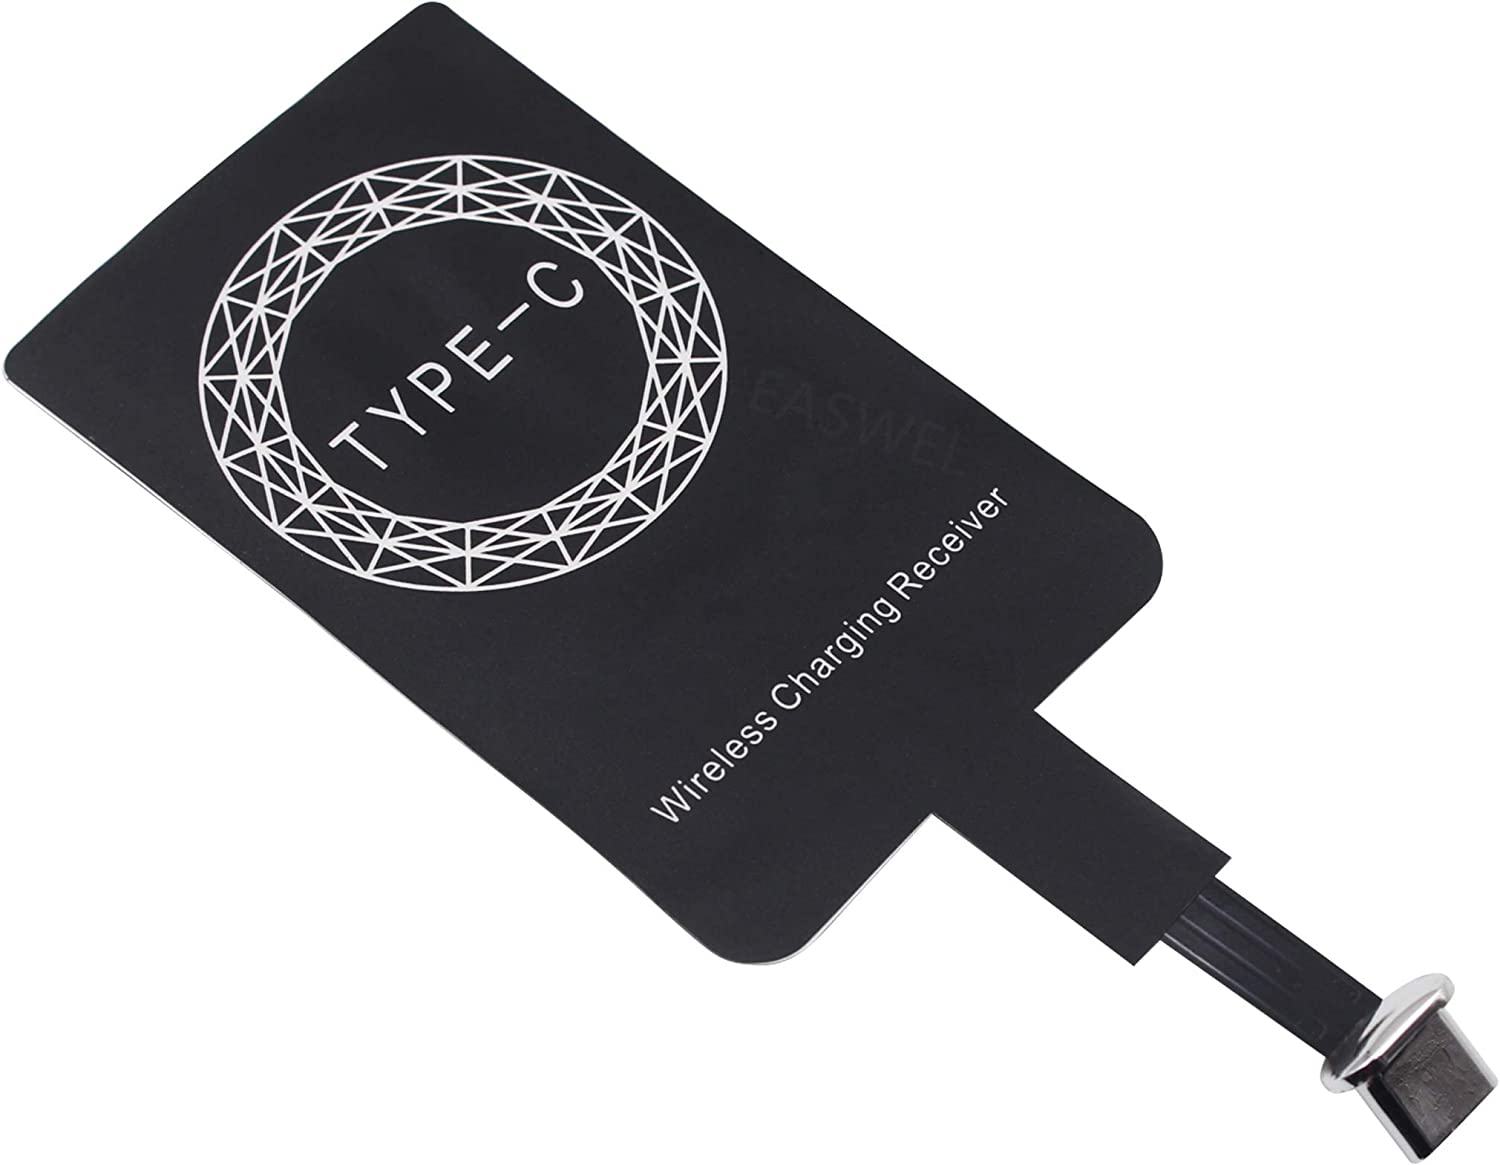 Qi Wireless Charger Adapter Charging Receiver for Google Chromebook Pixel 2